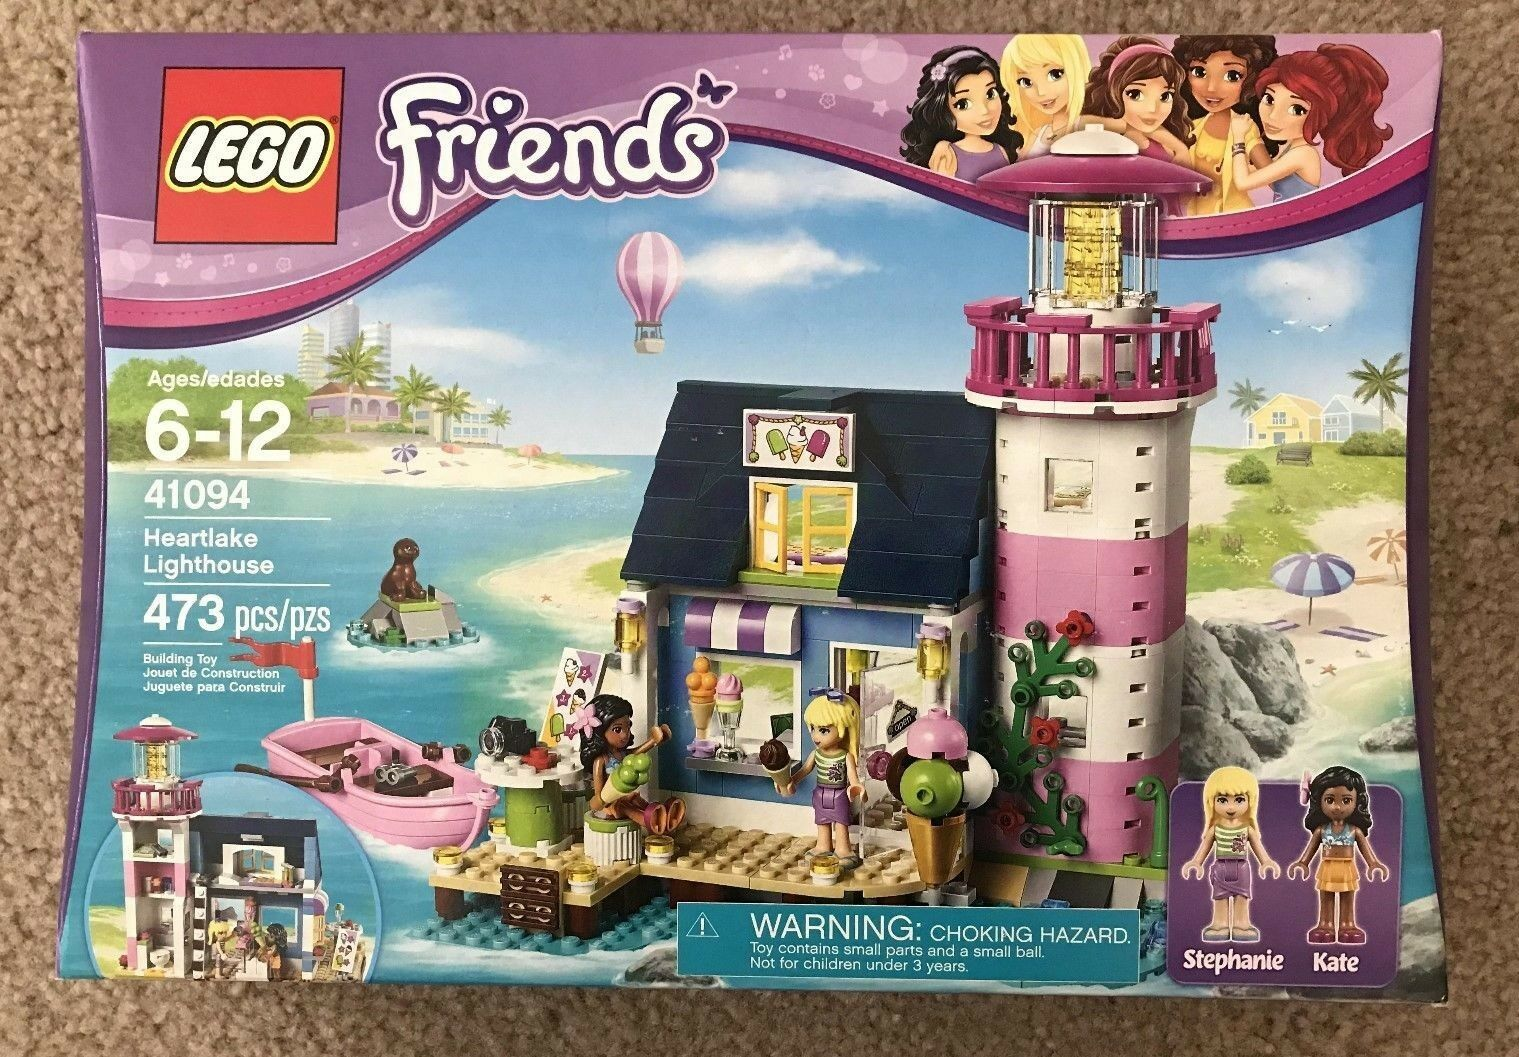 LEGO Friends Heartlake Lighthouse  41094  NISB